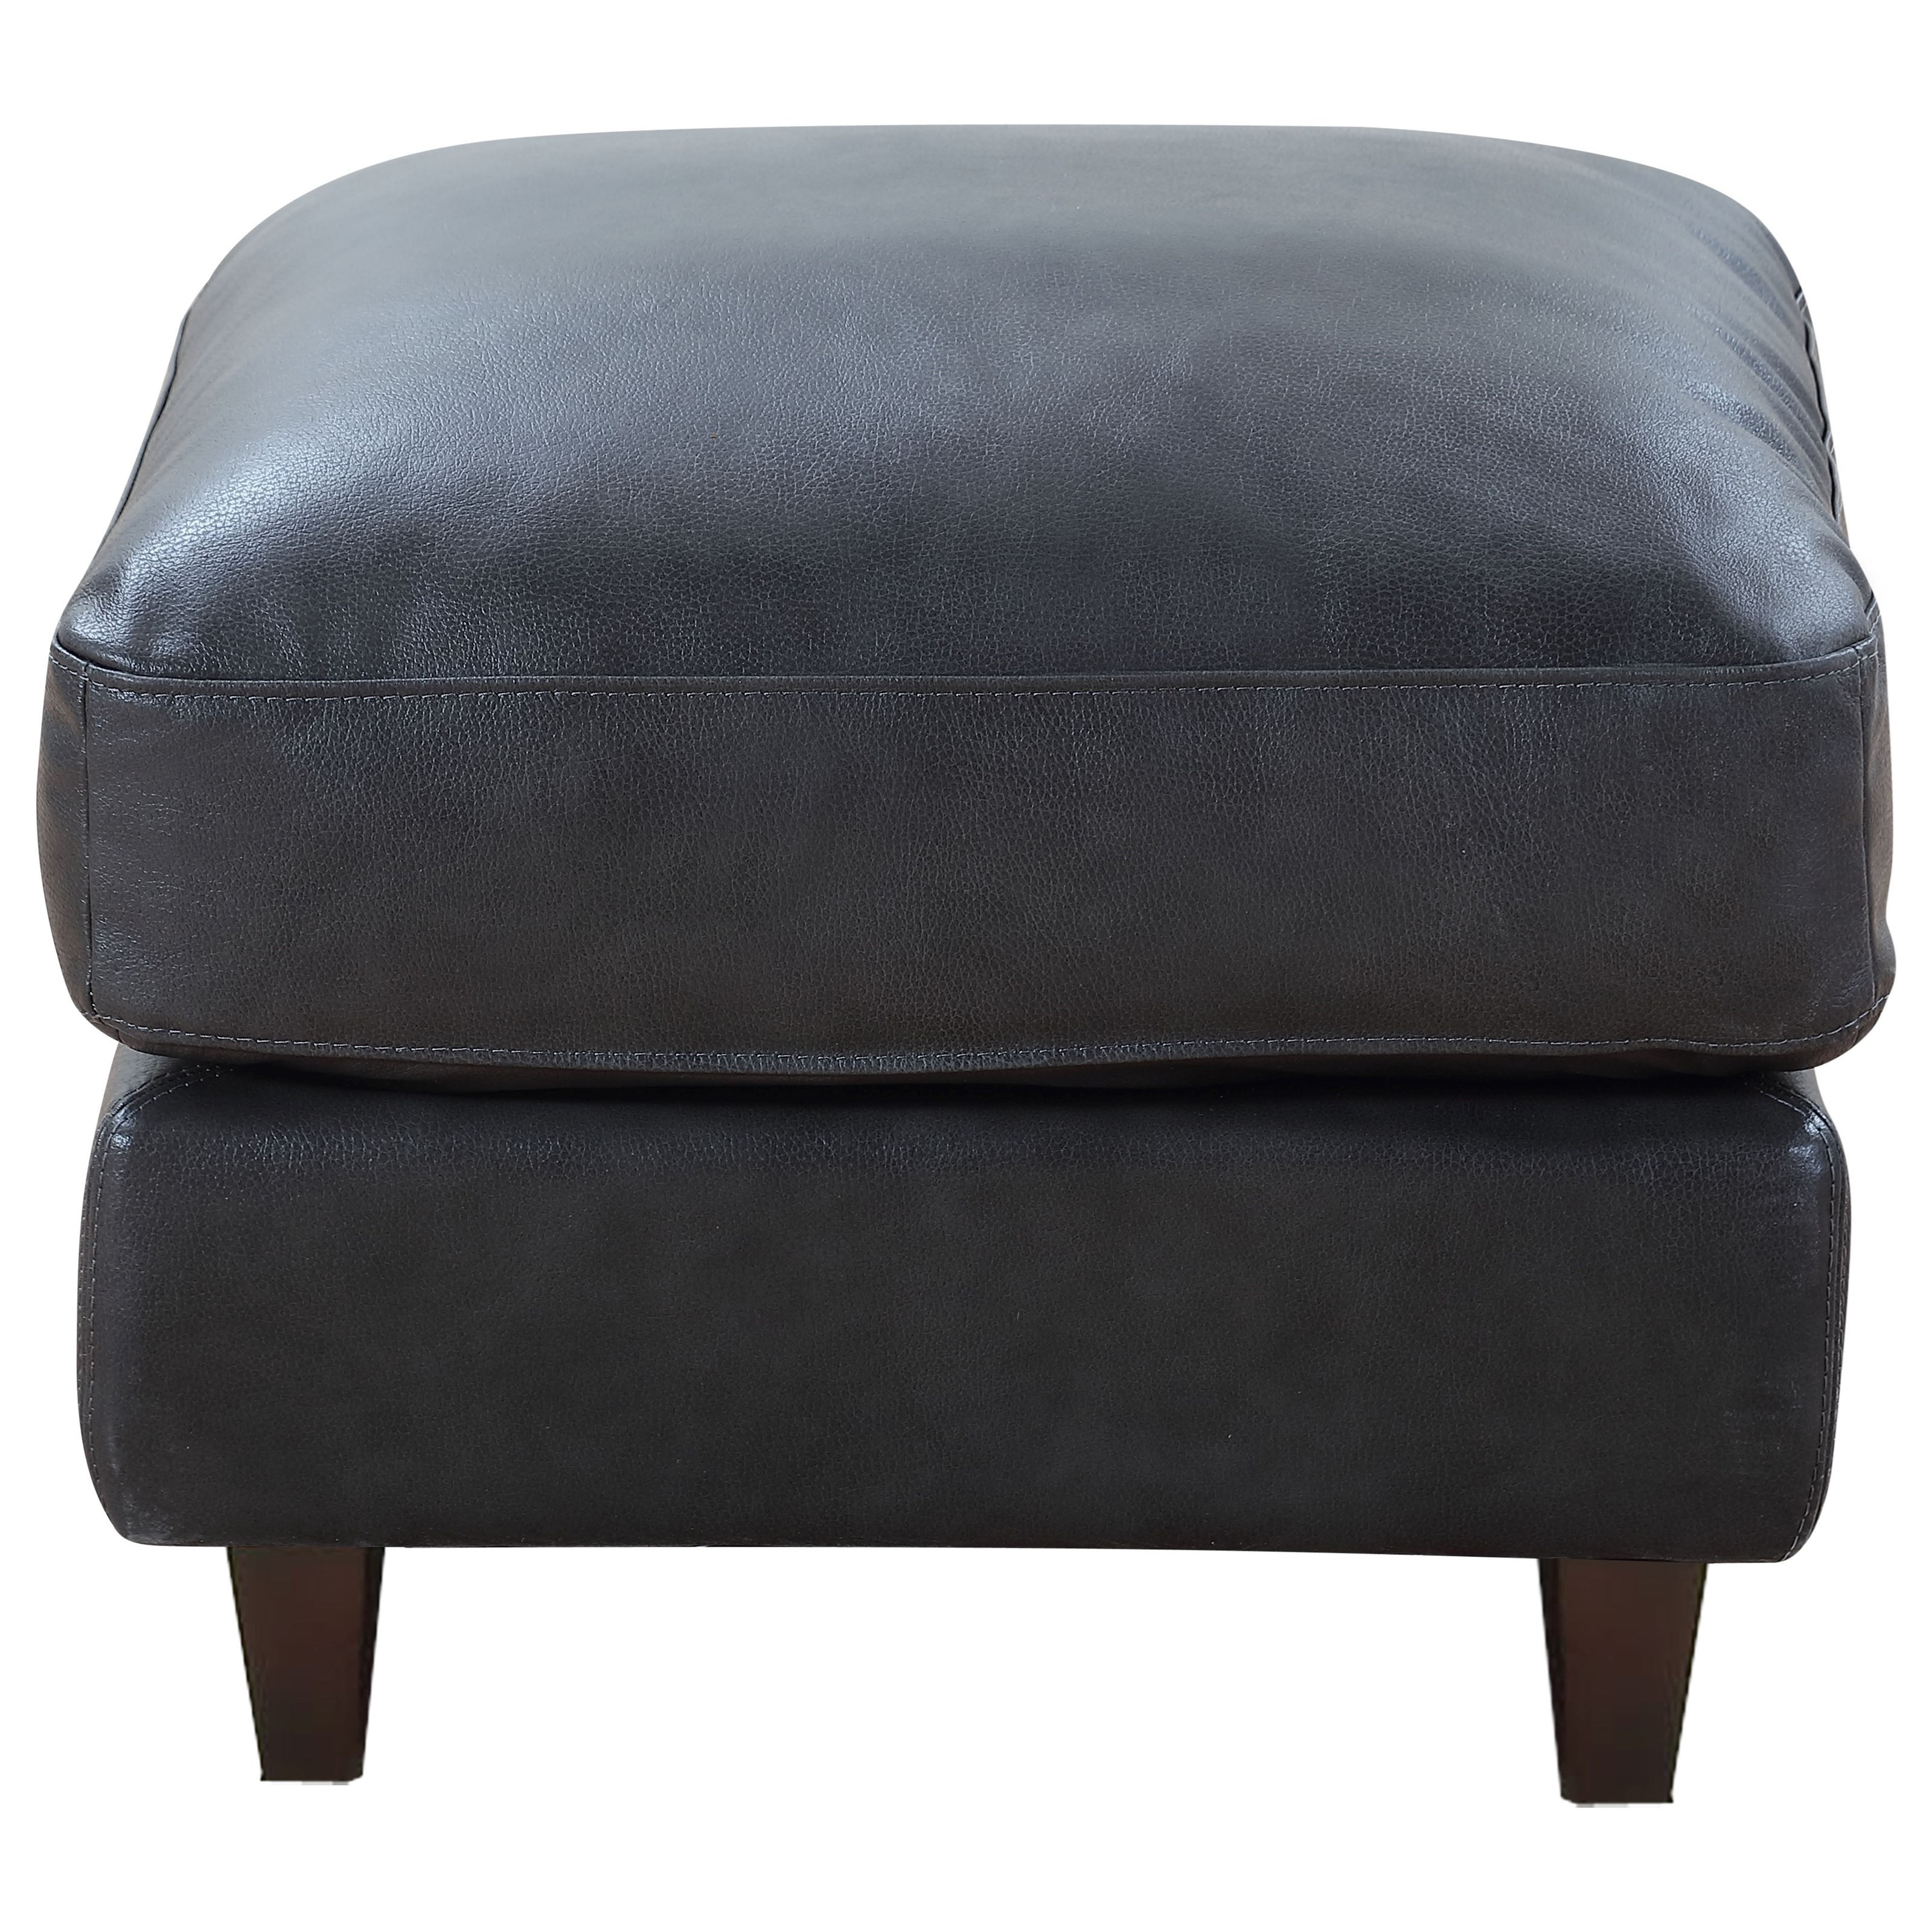 Georgetown - Chino Ottoman by Leather Italia USA at Johnny Janosik